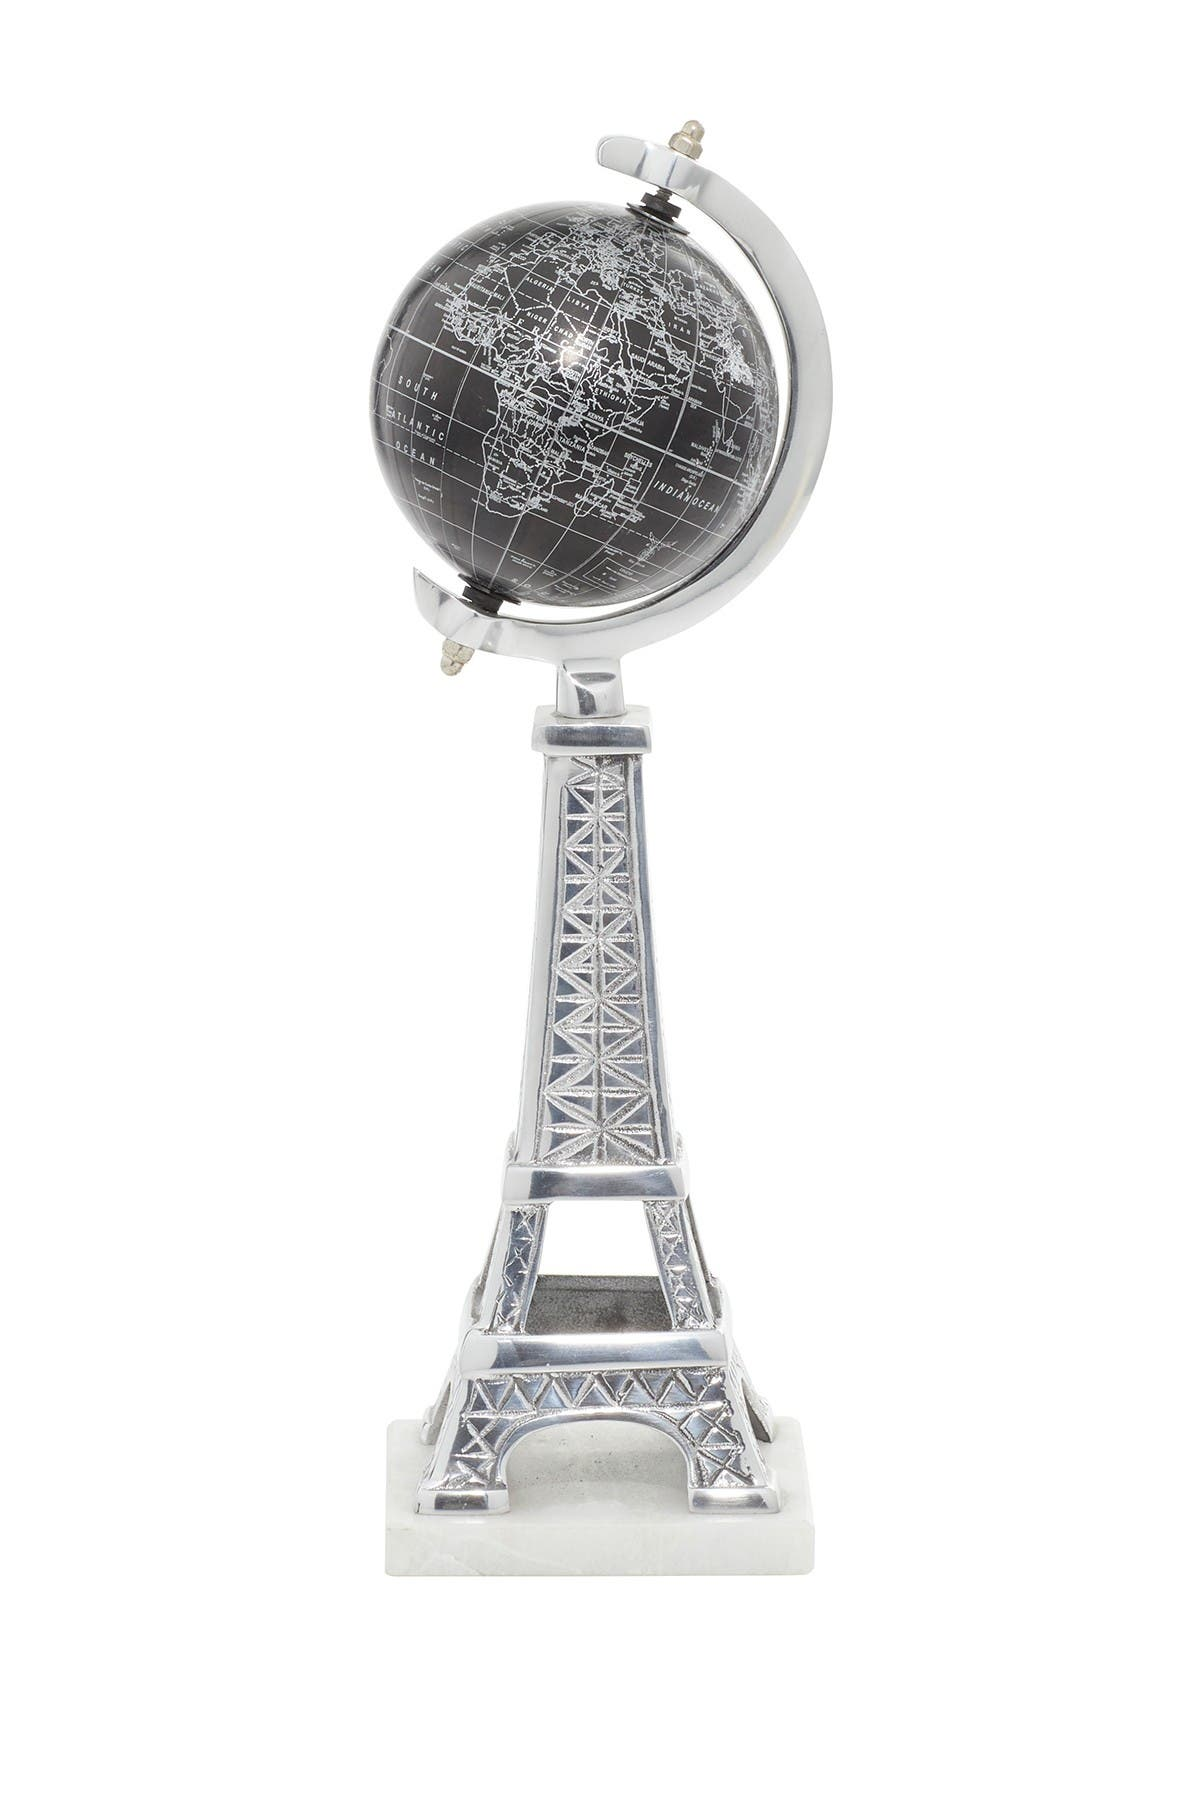 Image of Willow Row Glam Style Black PVC Globe On Aluminum Stand & Marble Base